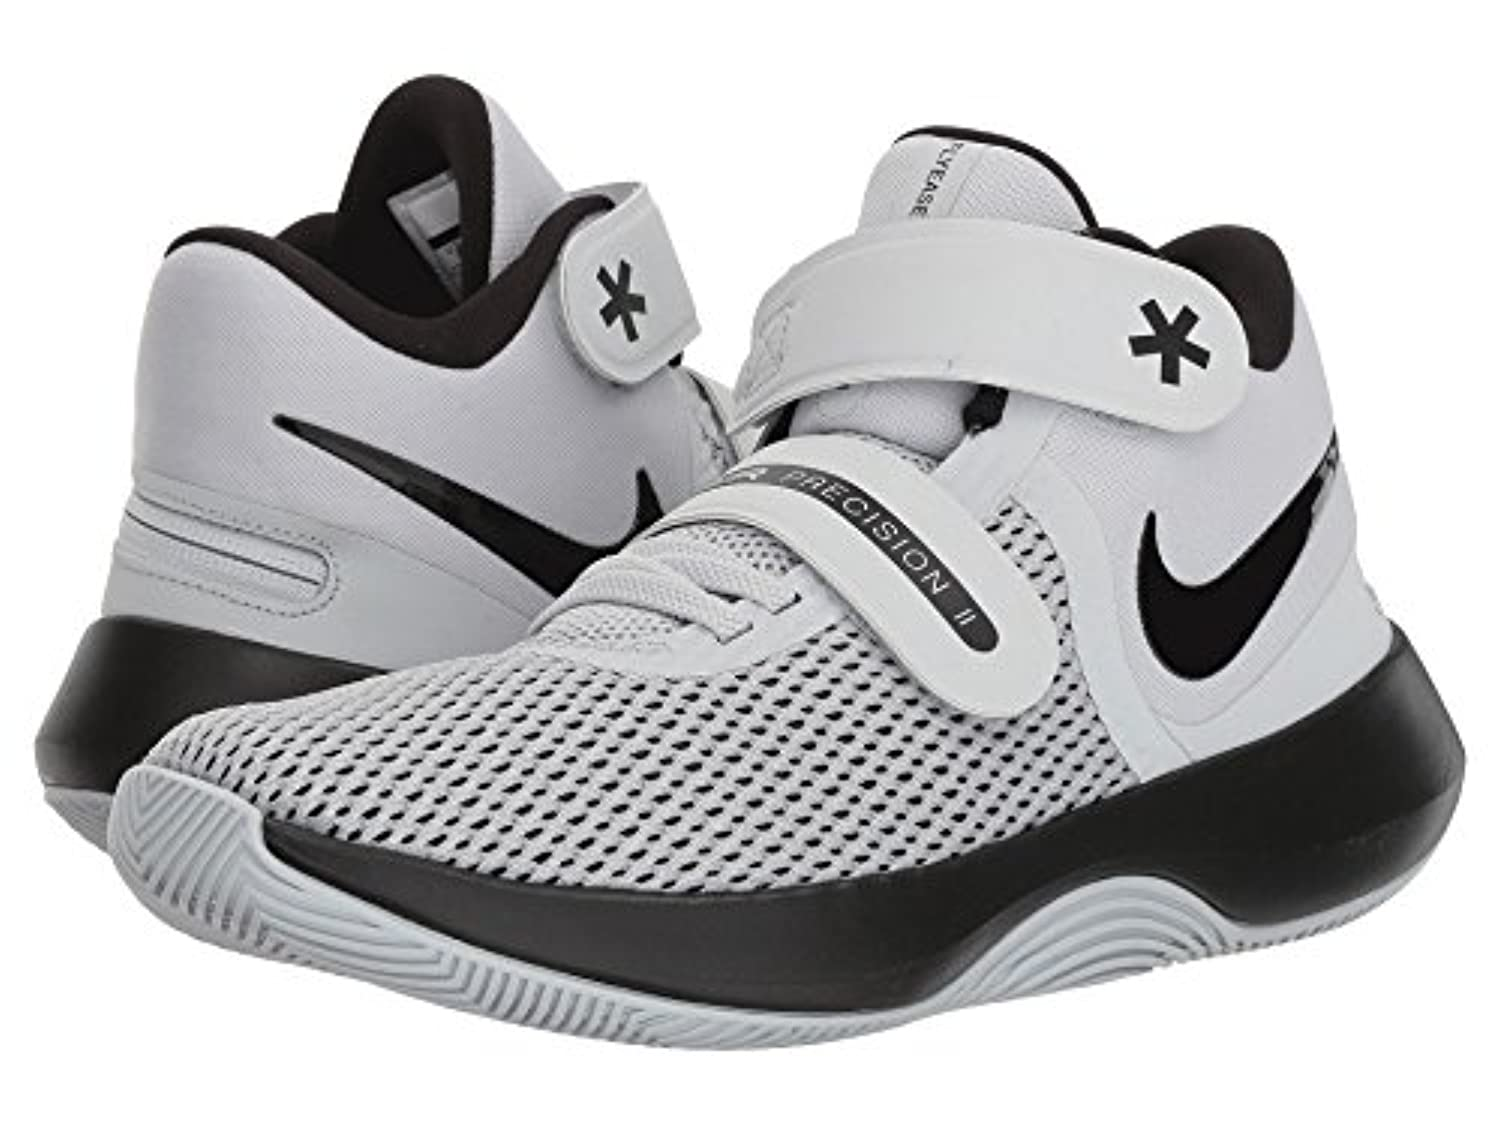 [NIKE(ナイキ)] レディーステニスシューズ?スニーカー?靴 Air Precision II FlyEase White/Black/Volt 6.5 (23.5cm) 4E - Extra Extra Wide